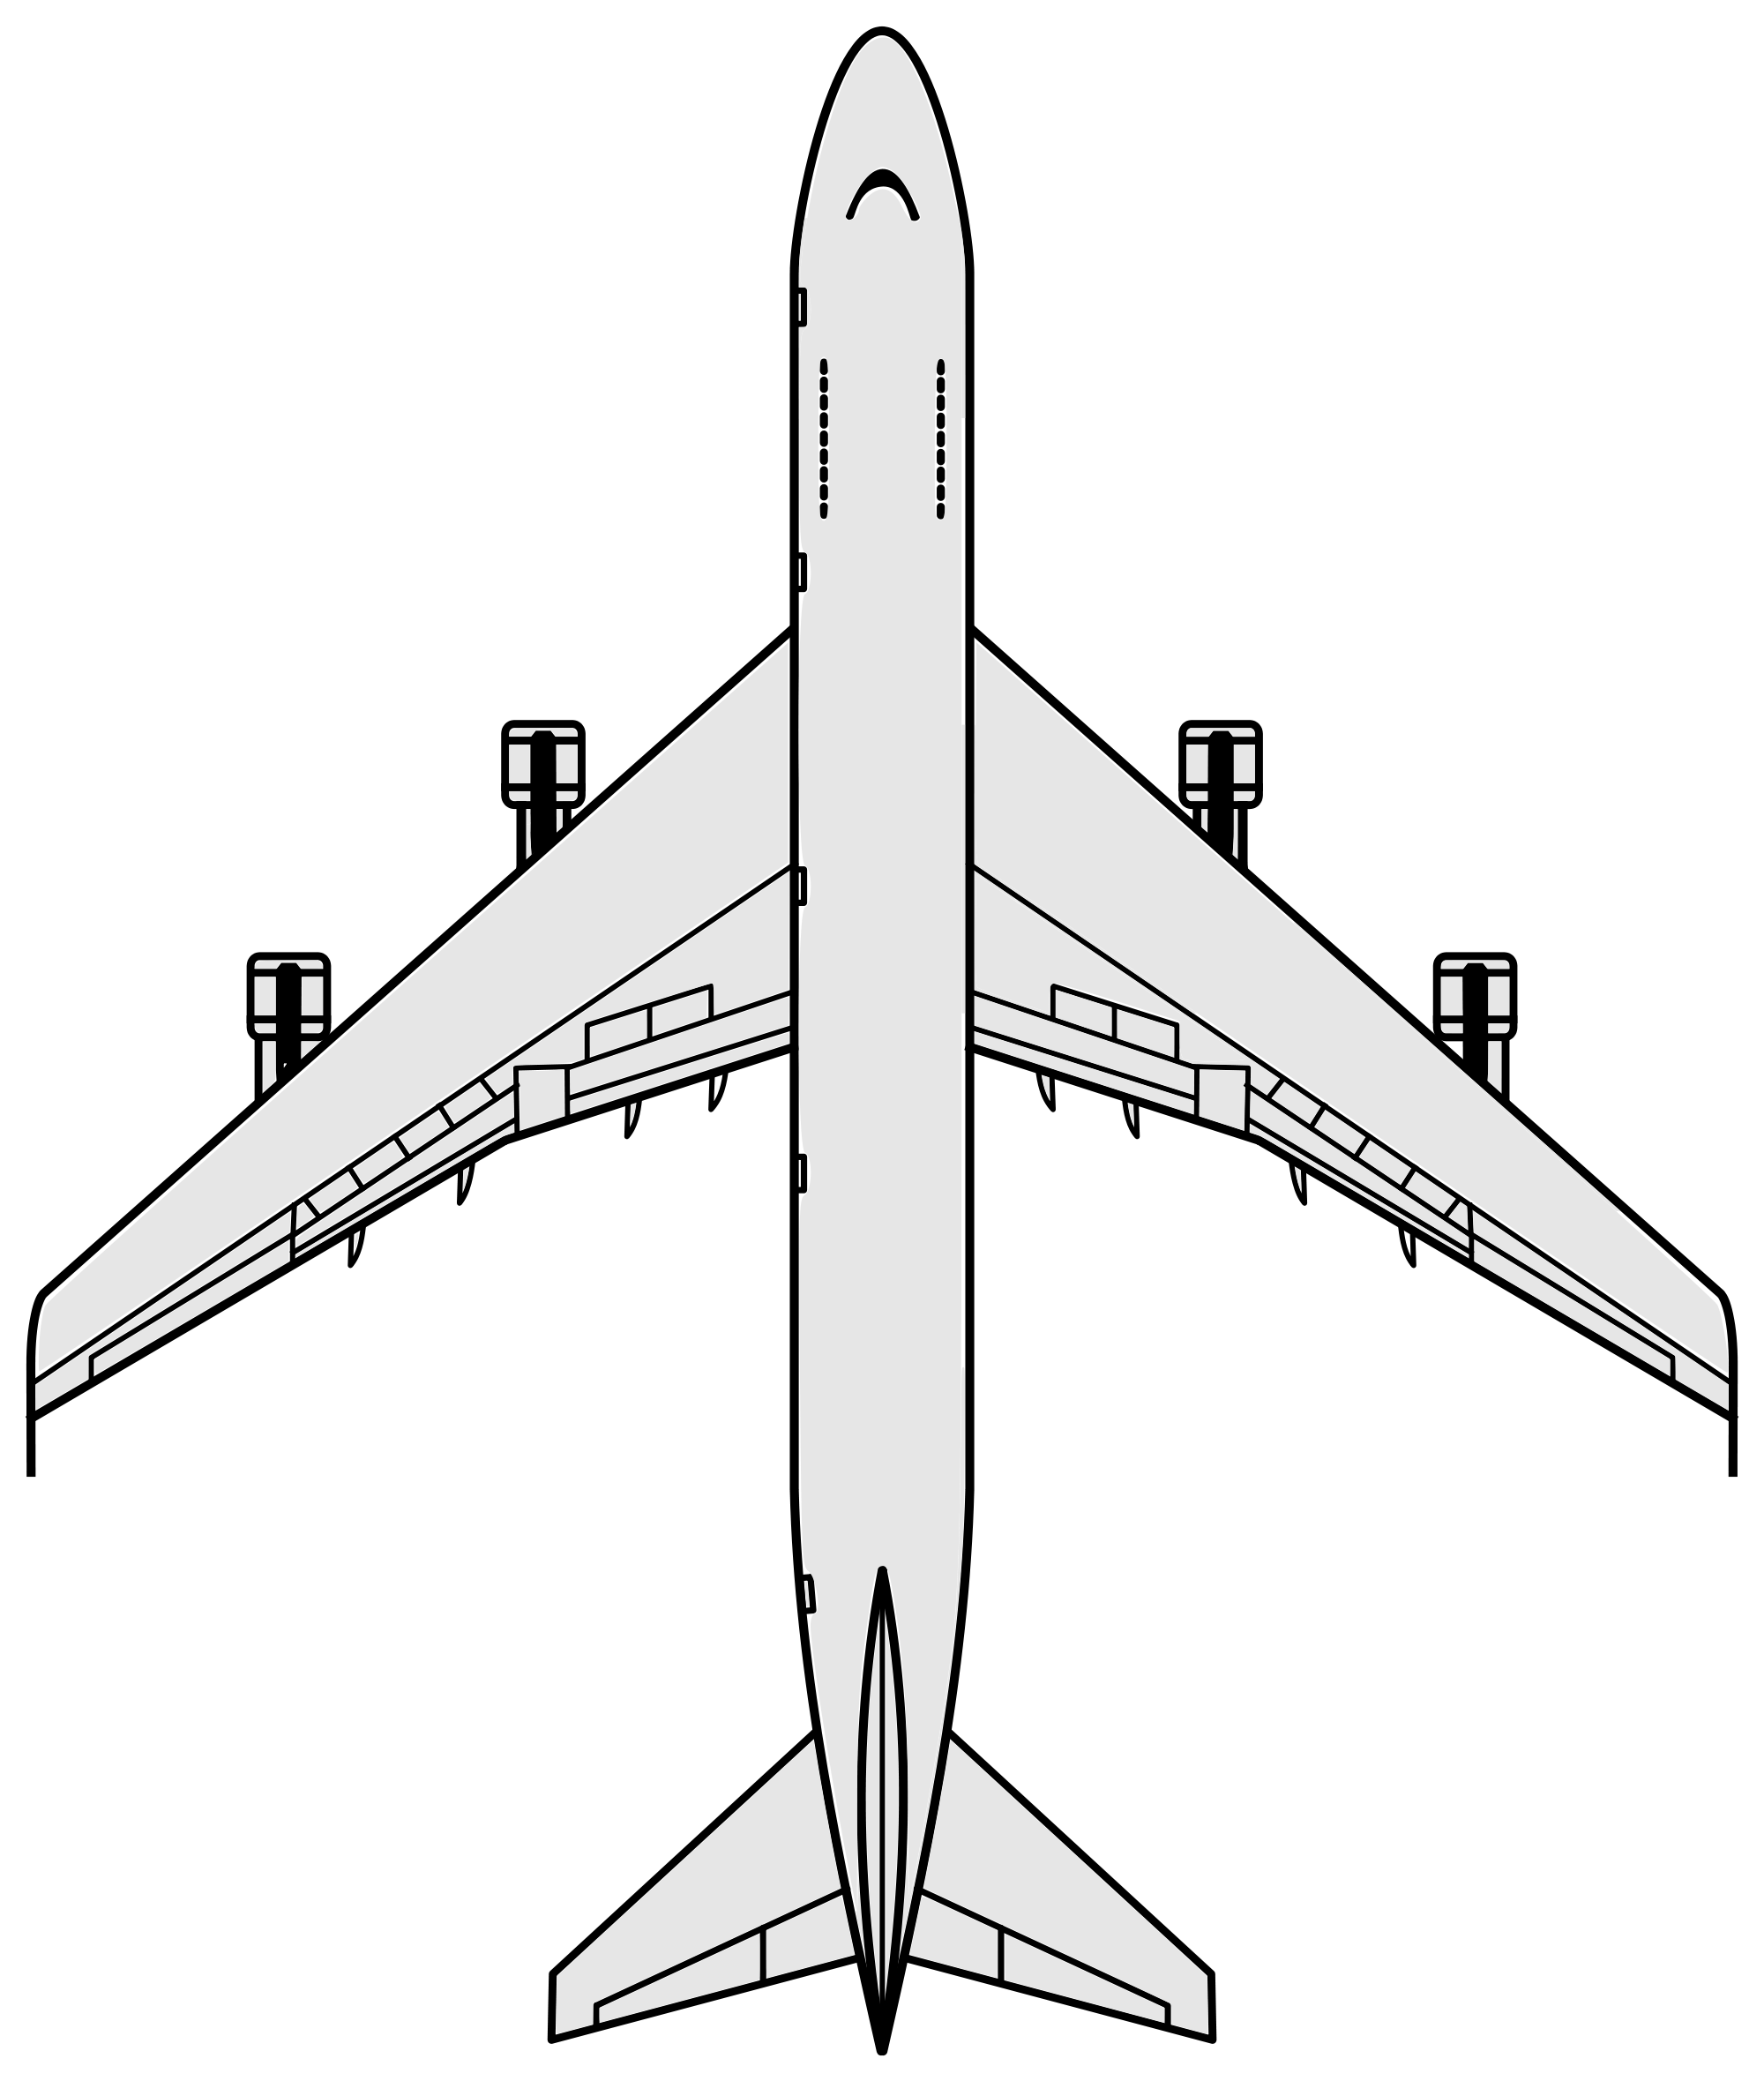 Svg airlines boeing. File top wikimedia commons